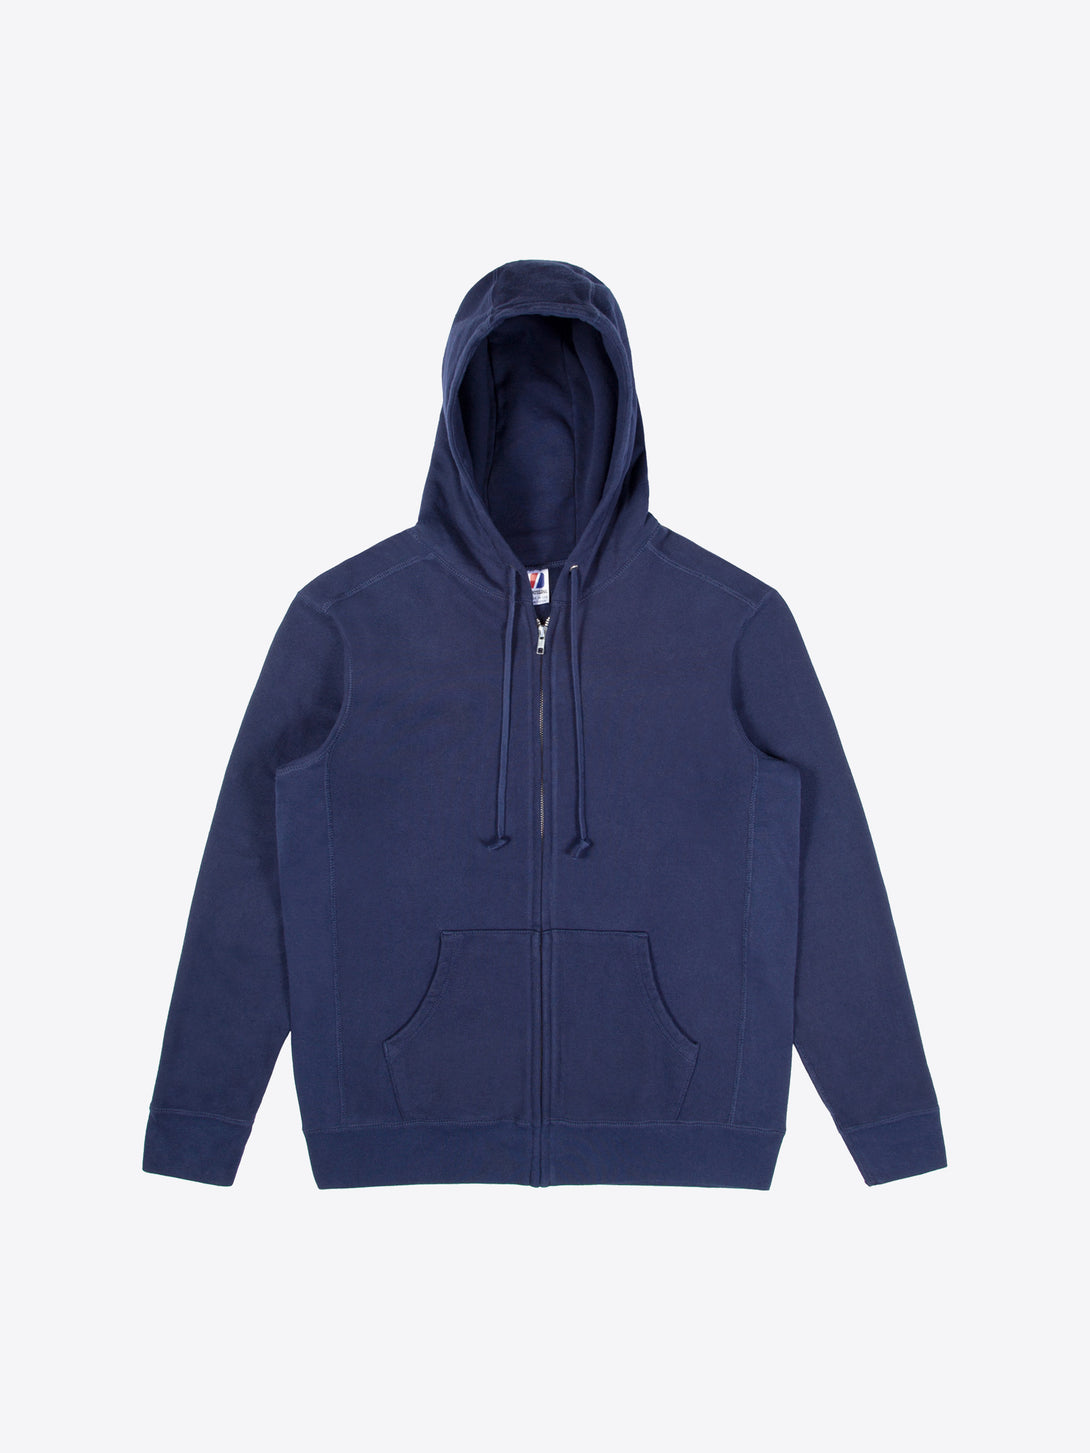 Athletic Fit Zip Hoodie - Navy